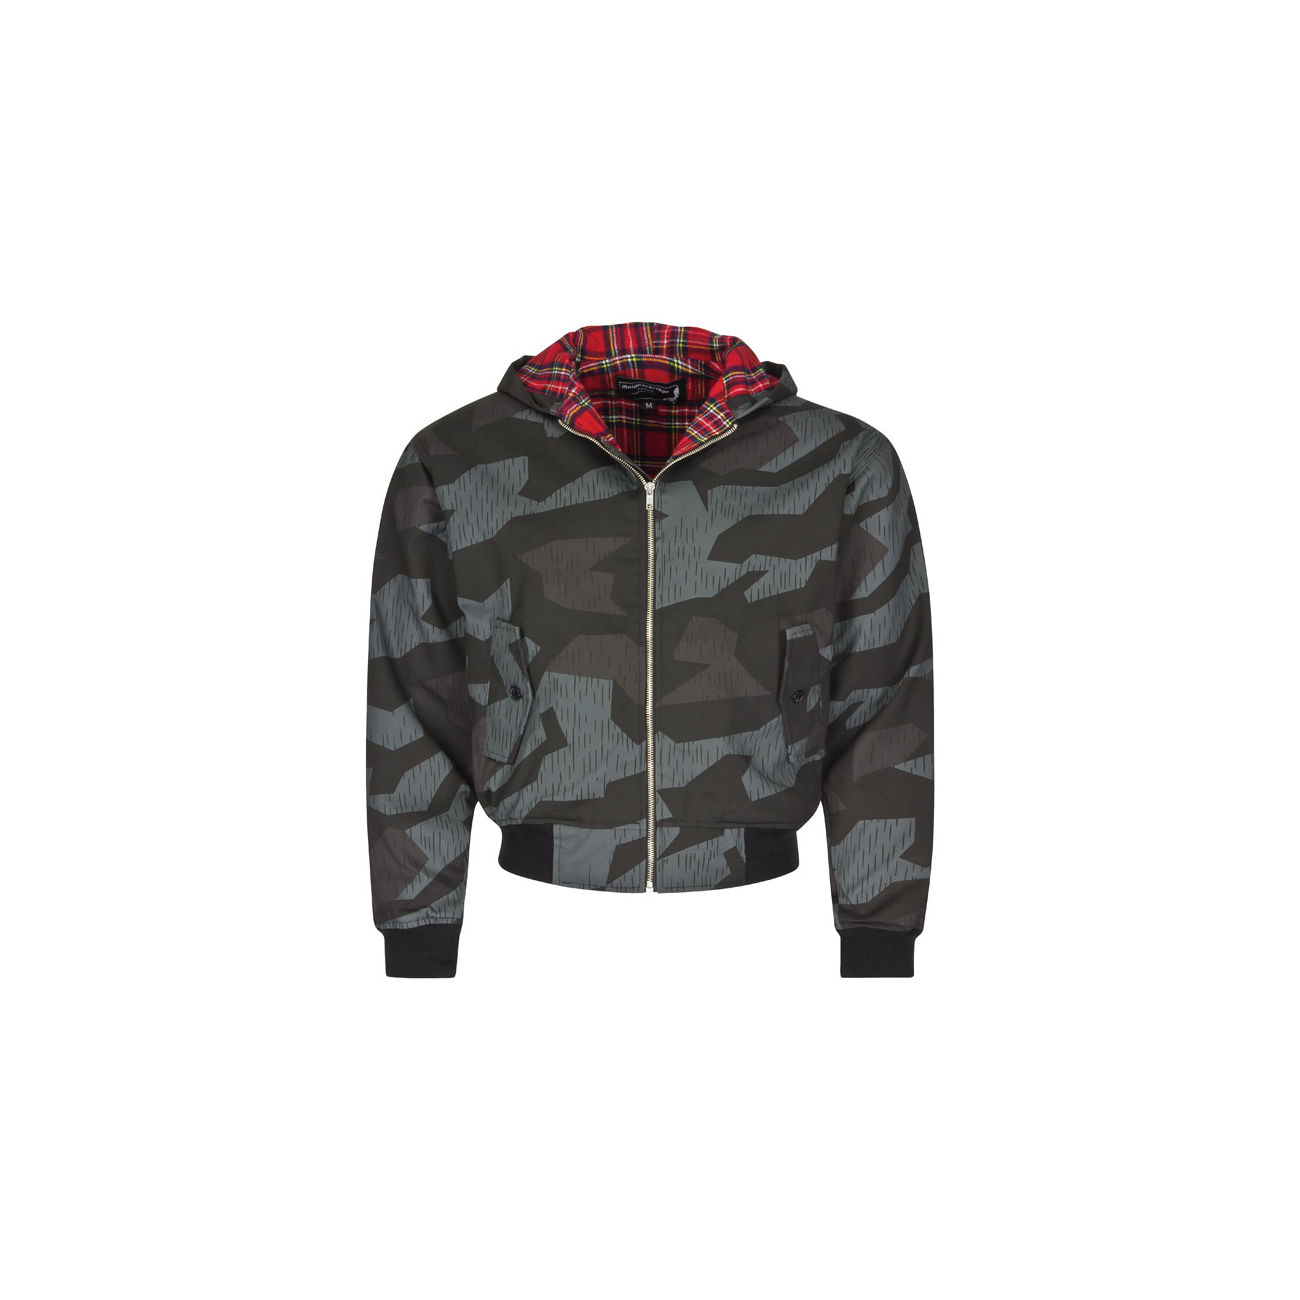 Harrington Jacke, dark-splinter mit Kapuze